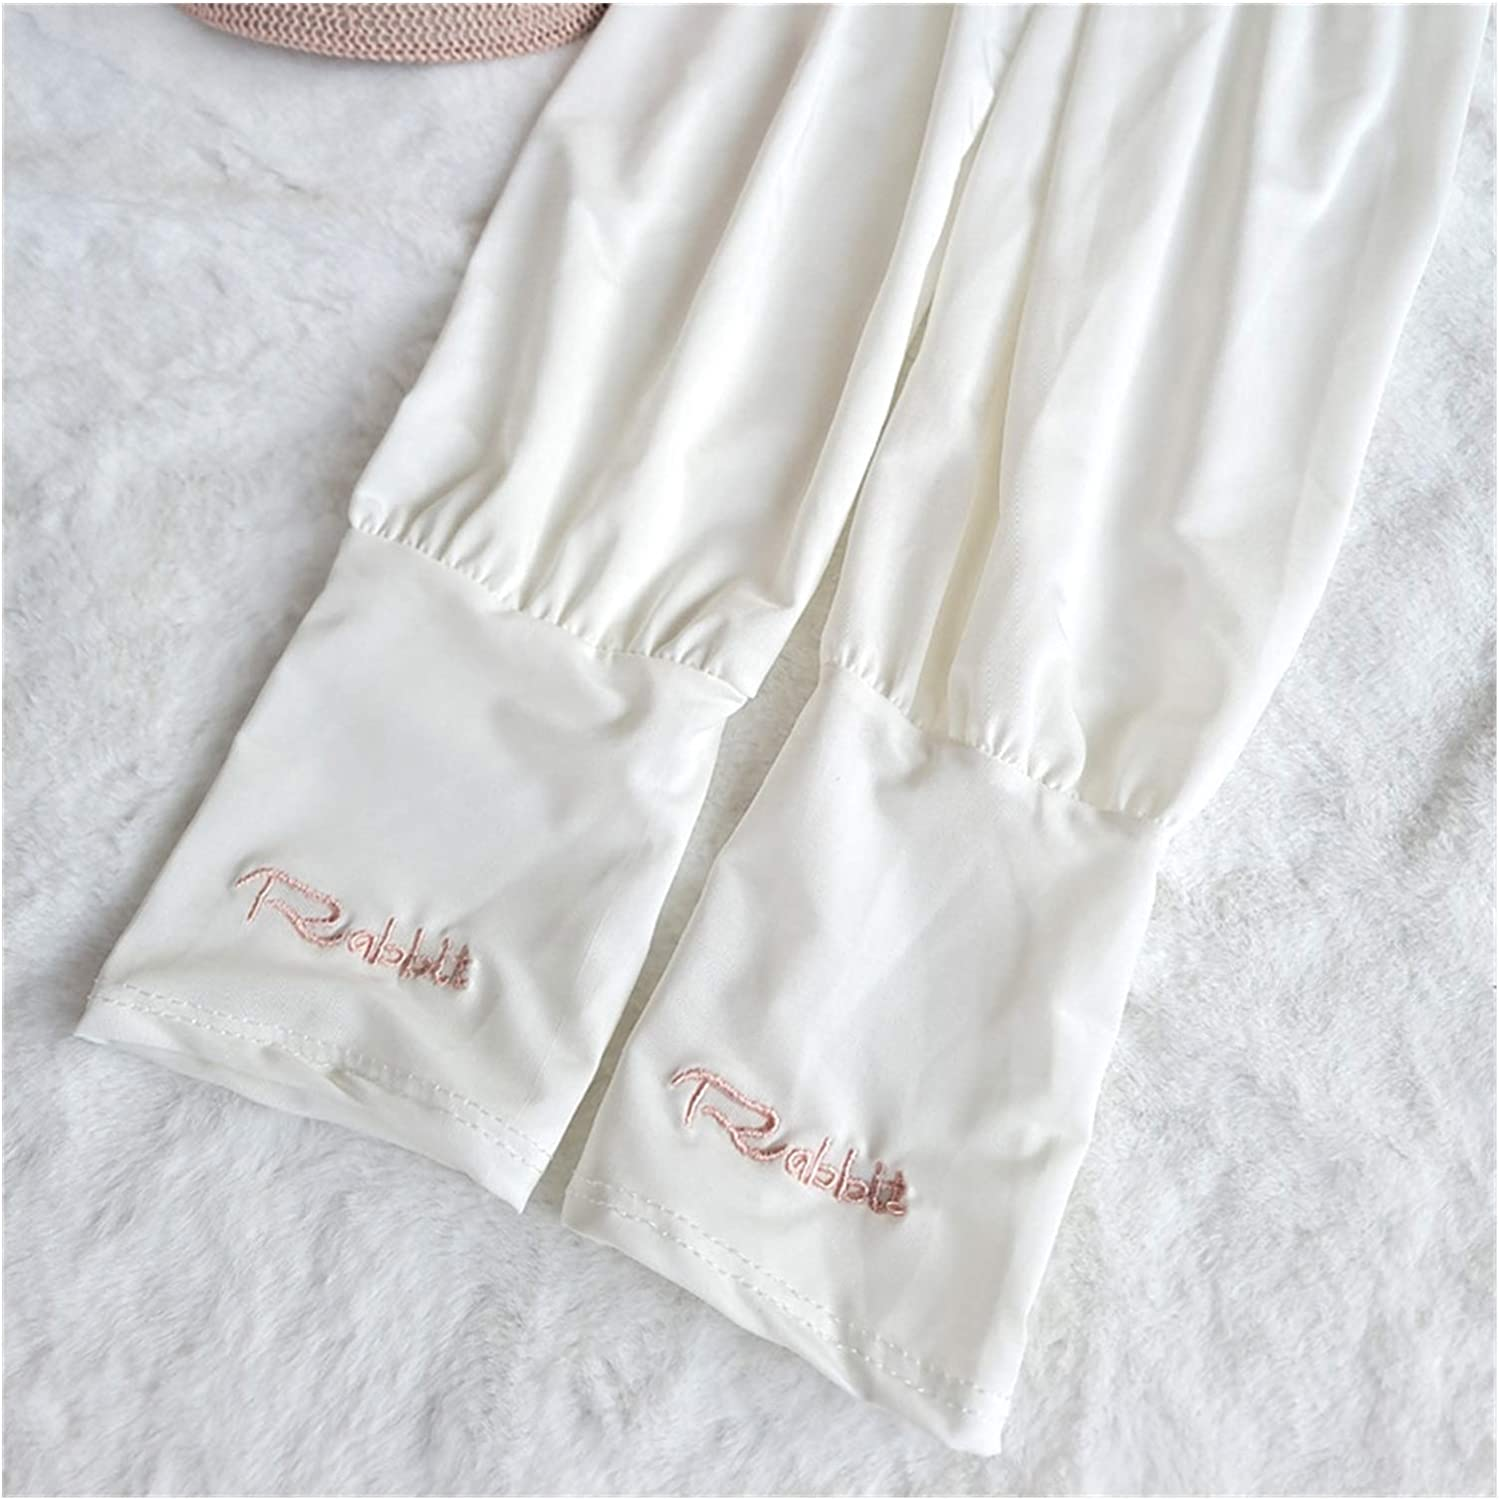 DMYONGLIAN Lace Gloves Summer Loose Sunscreen Driving ice Silk Sleeve Female Long Length UV Protection Sleeve arm arm Glove ice Sleeve Accessories (Color : A3, Size : One Size)